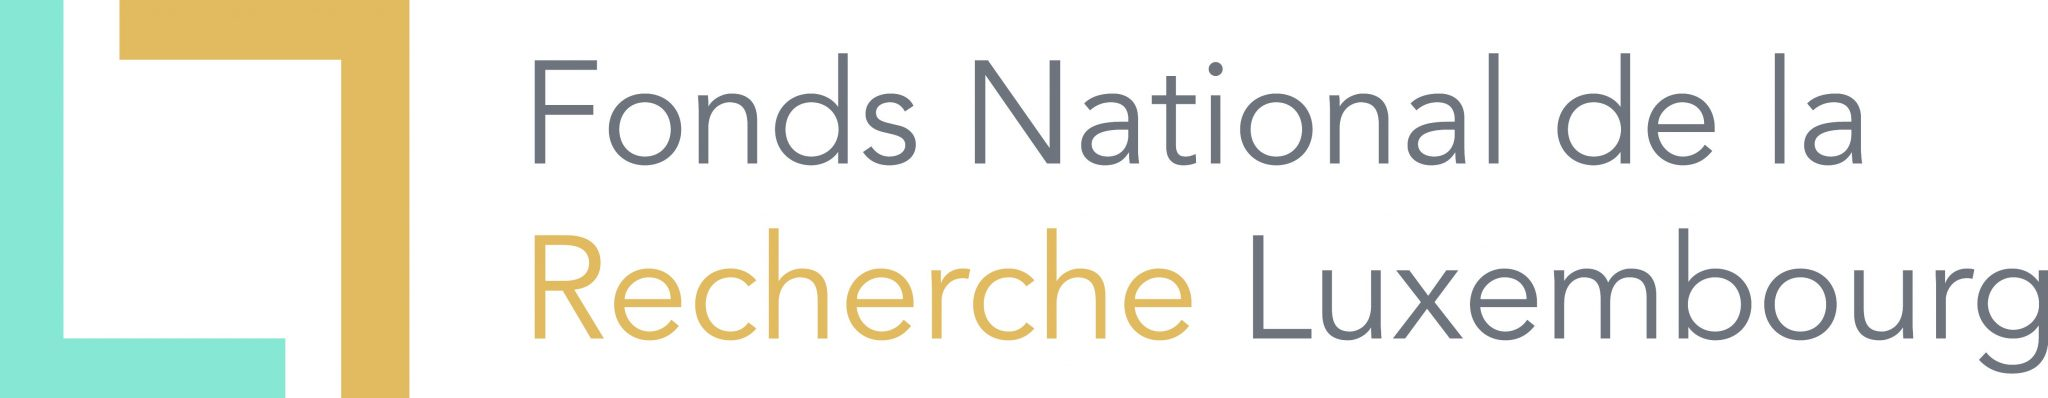 Luxembourg national research fund FNR_logo_QUADRI_gris_HD